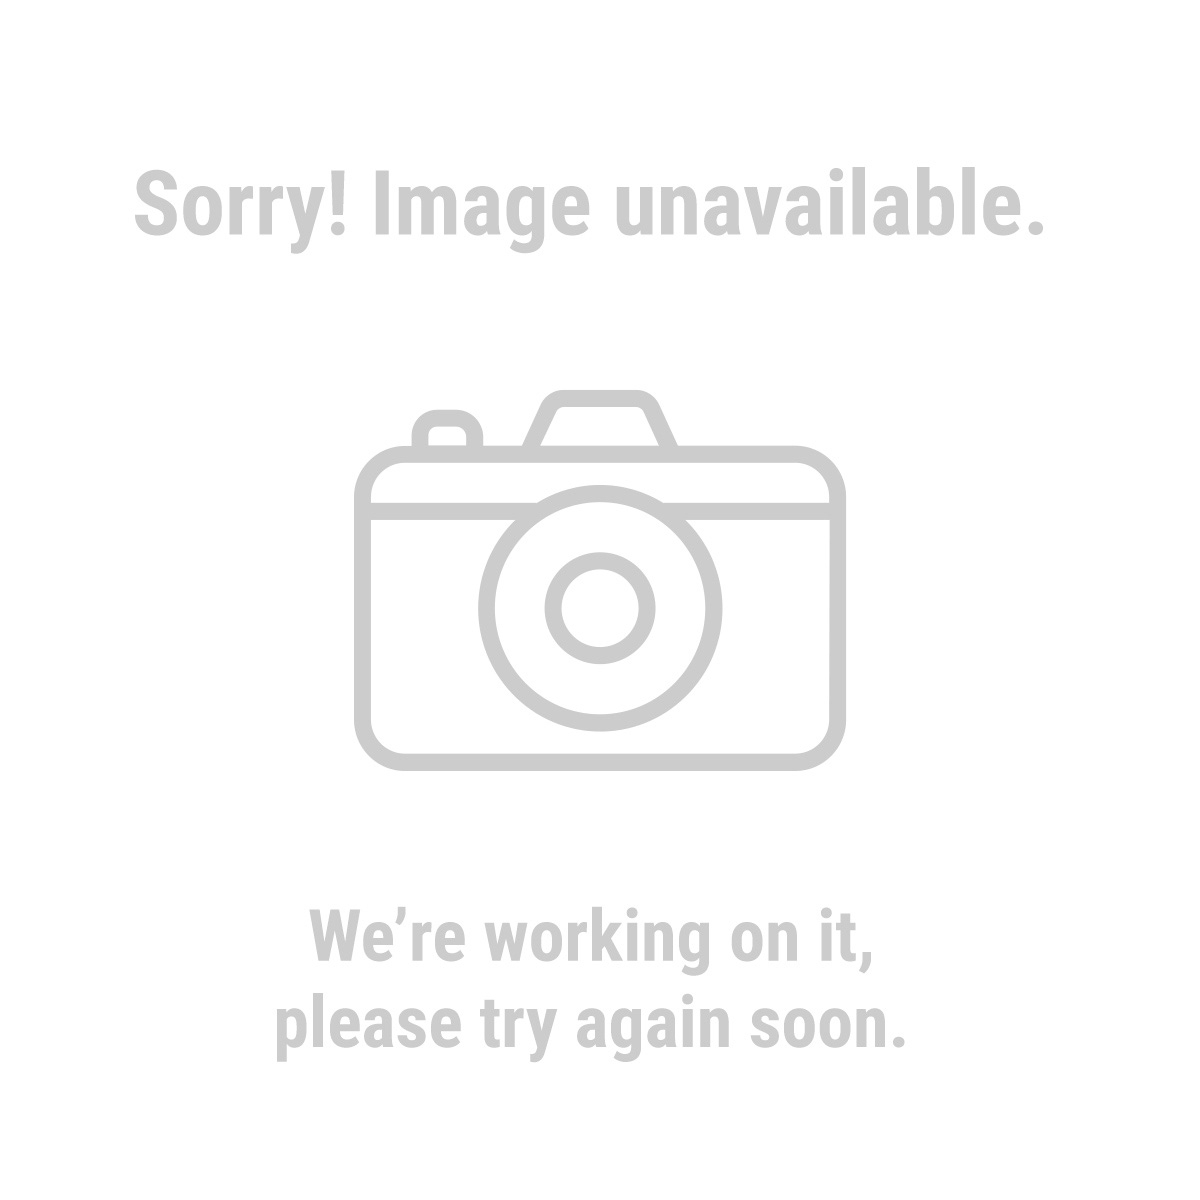 10 ft. x 20 ft. Portable Car Canopy  sc 1 st  Harbor Freight : 10 ft canopy - memphite.com